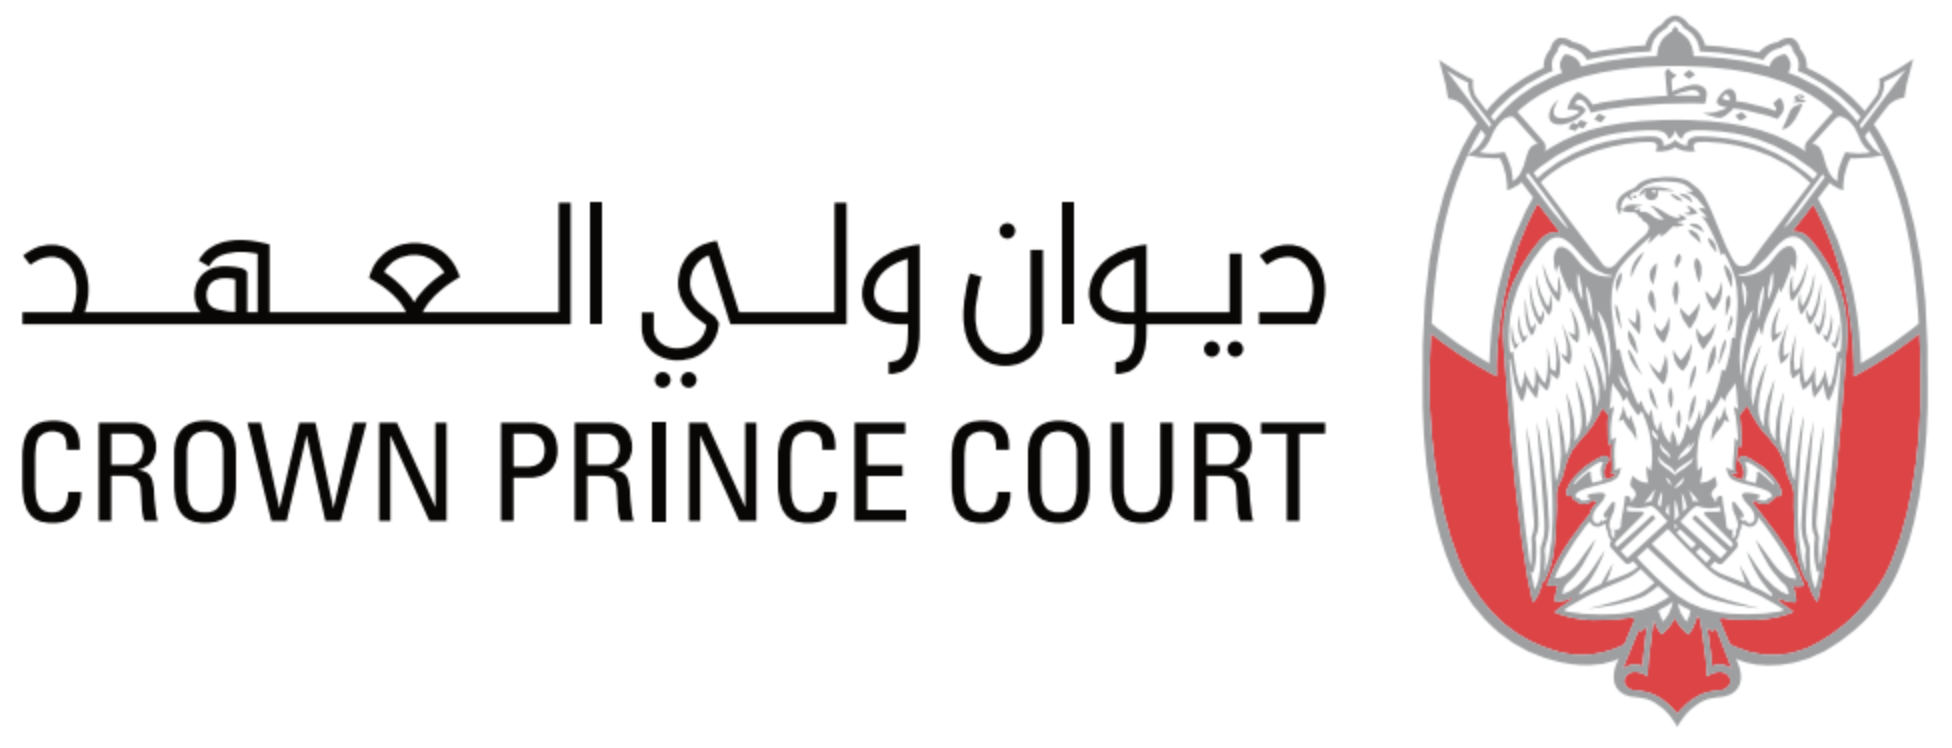 Solve at MIT 2019: 204 Abu Dhabi Crown Prince Court